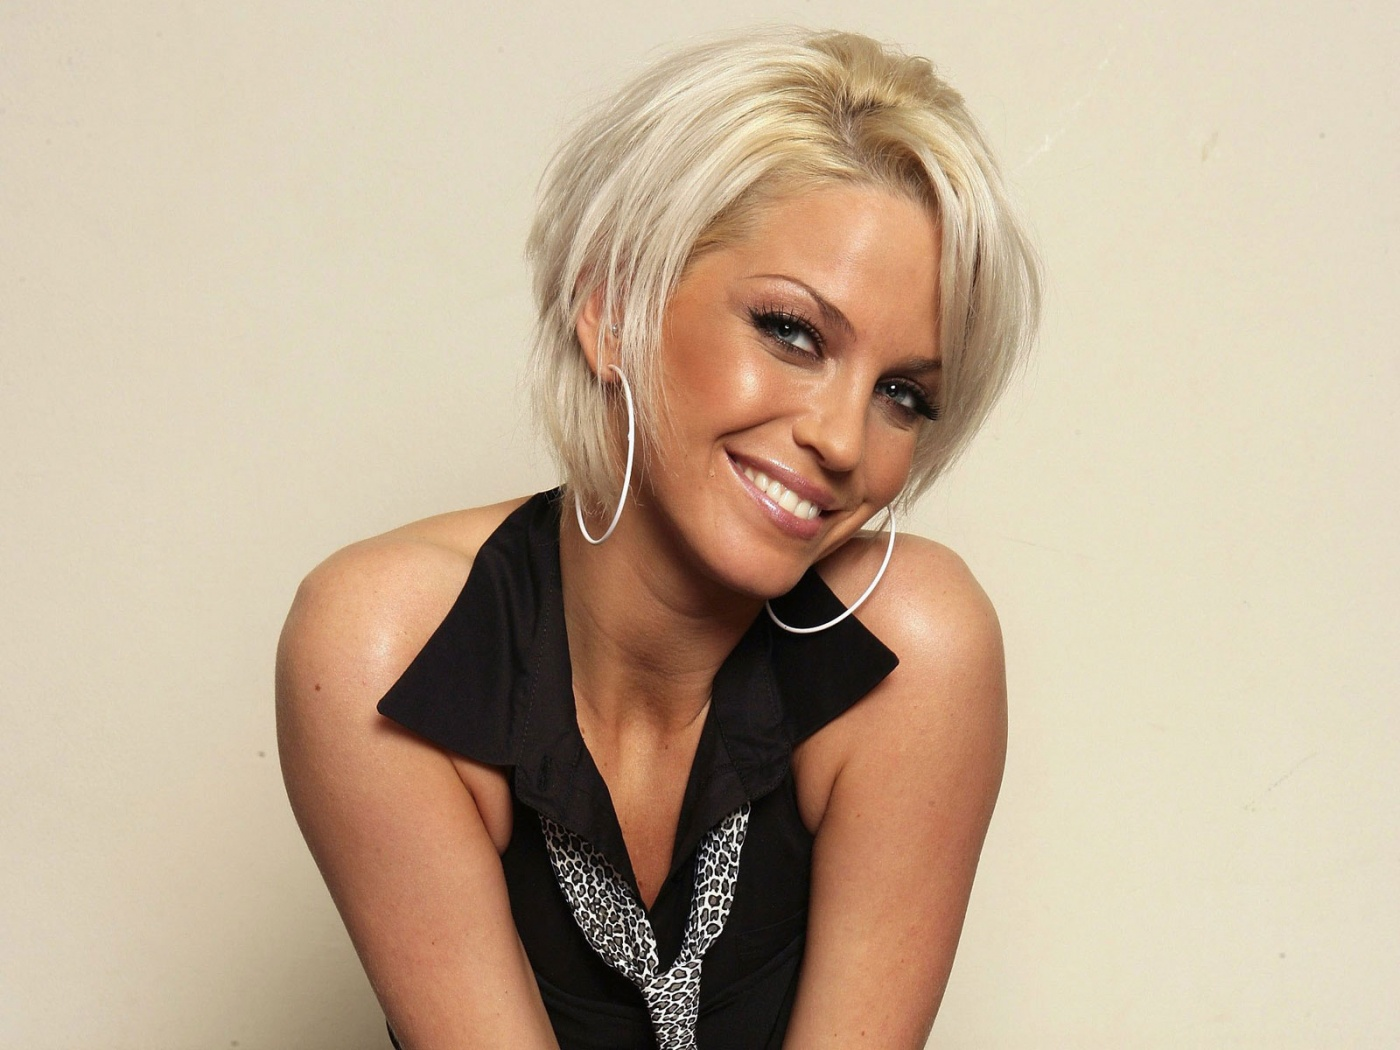 sarah harding hairstyle wallpaper 58656